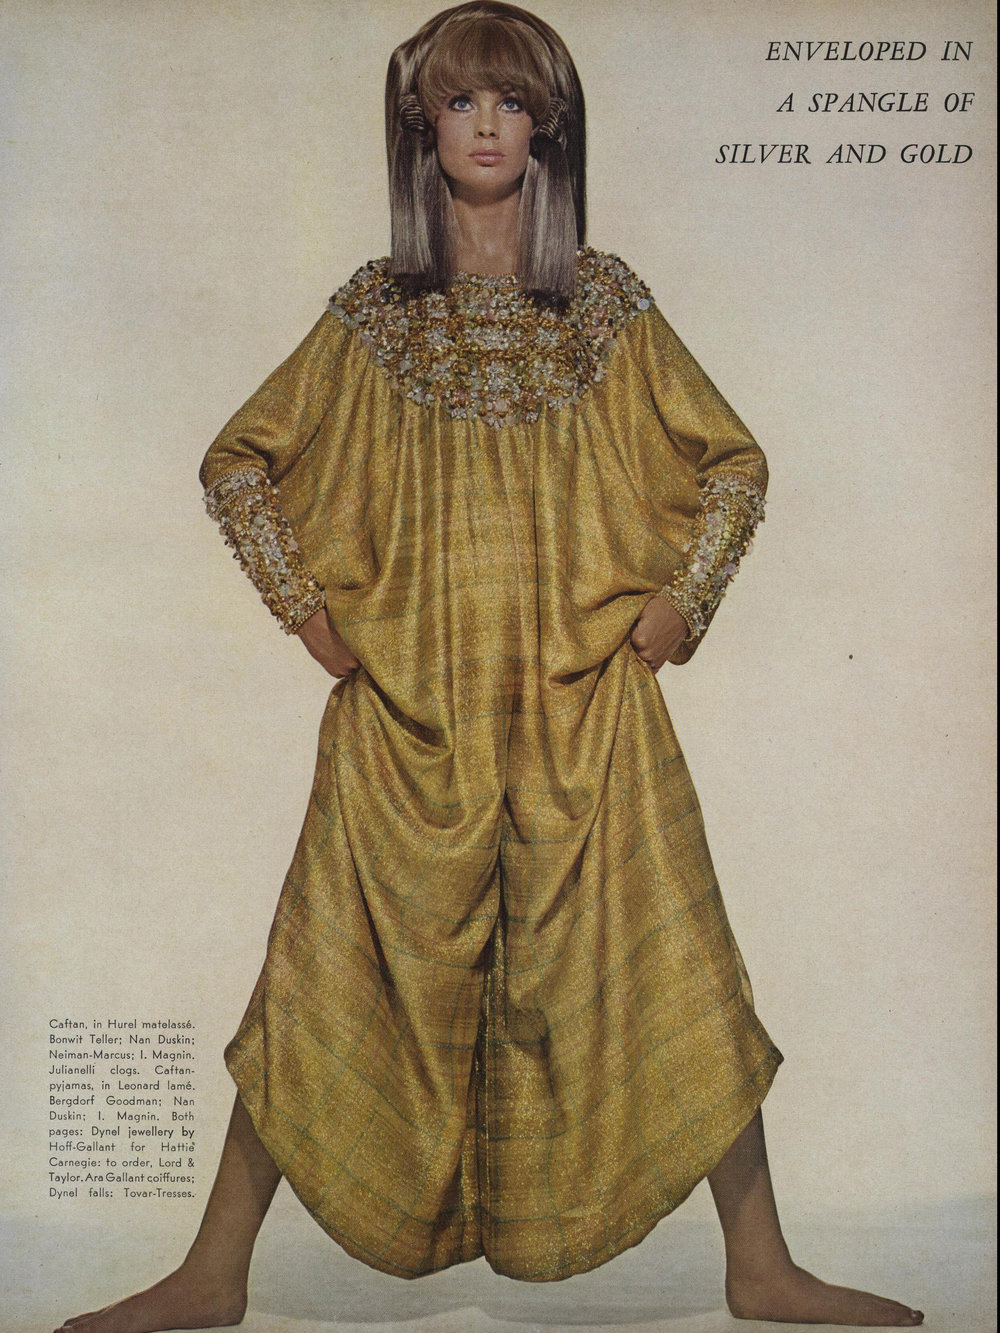 Jean Shrimpton in a gold lamé caftan jumpsuit, heavily embroidered with opalescent stones on the yoke and cuffs. Photographed by Richard Avedon for  Vogue , November 1966.